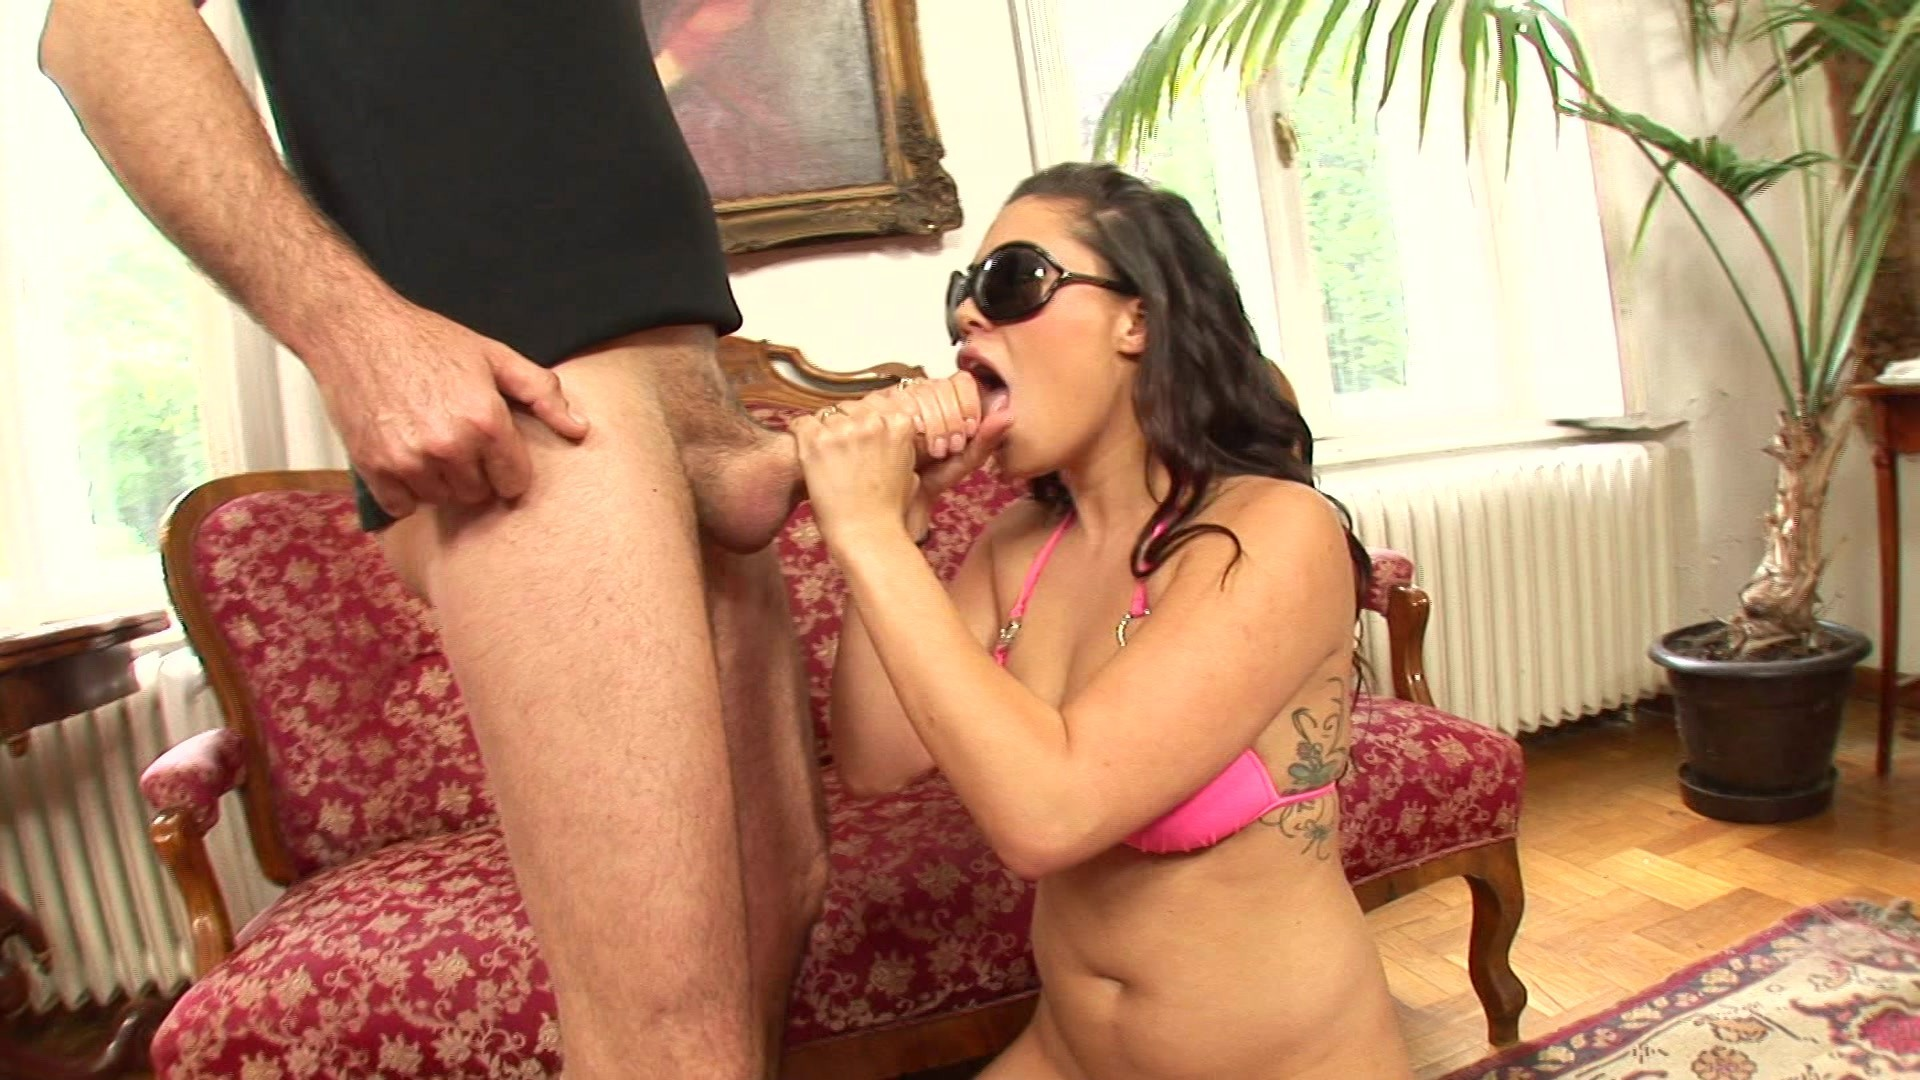 Asian Babe Gets Her Asshole Fucked